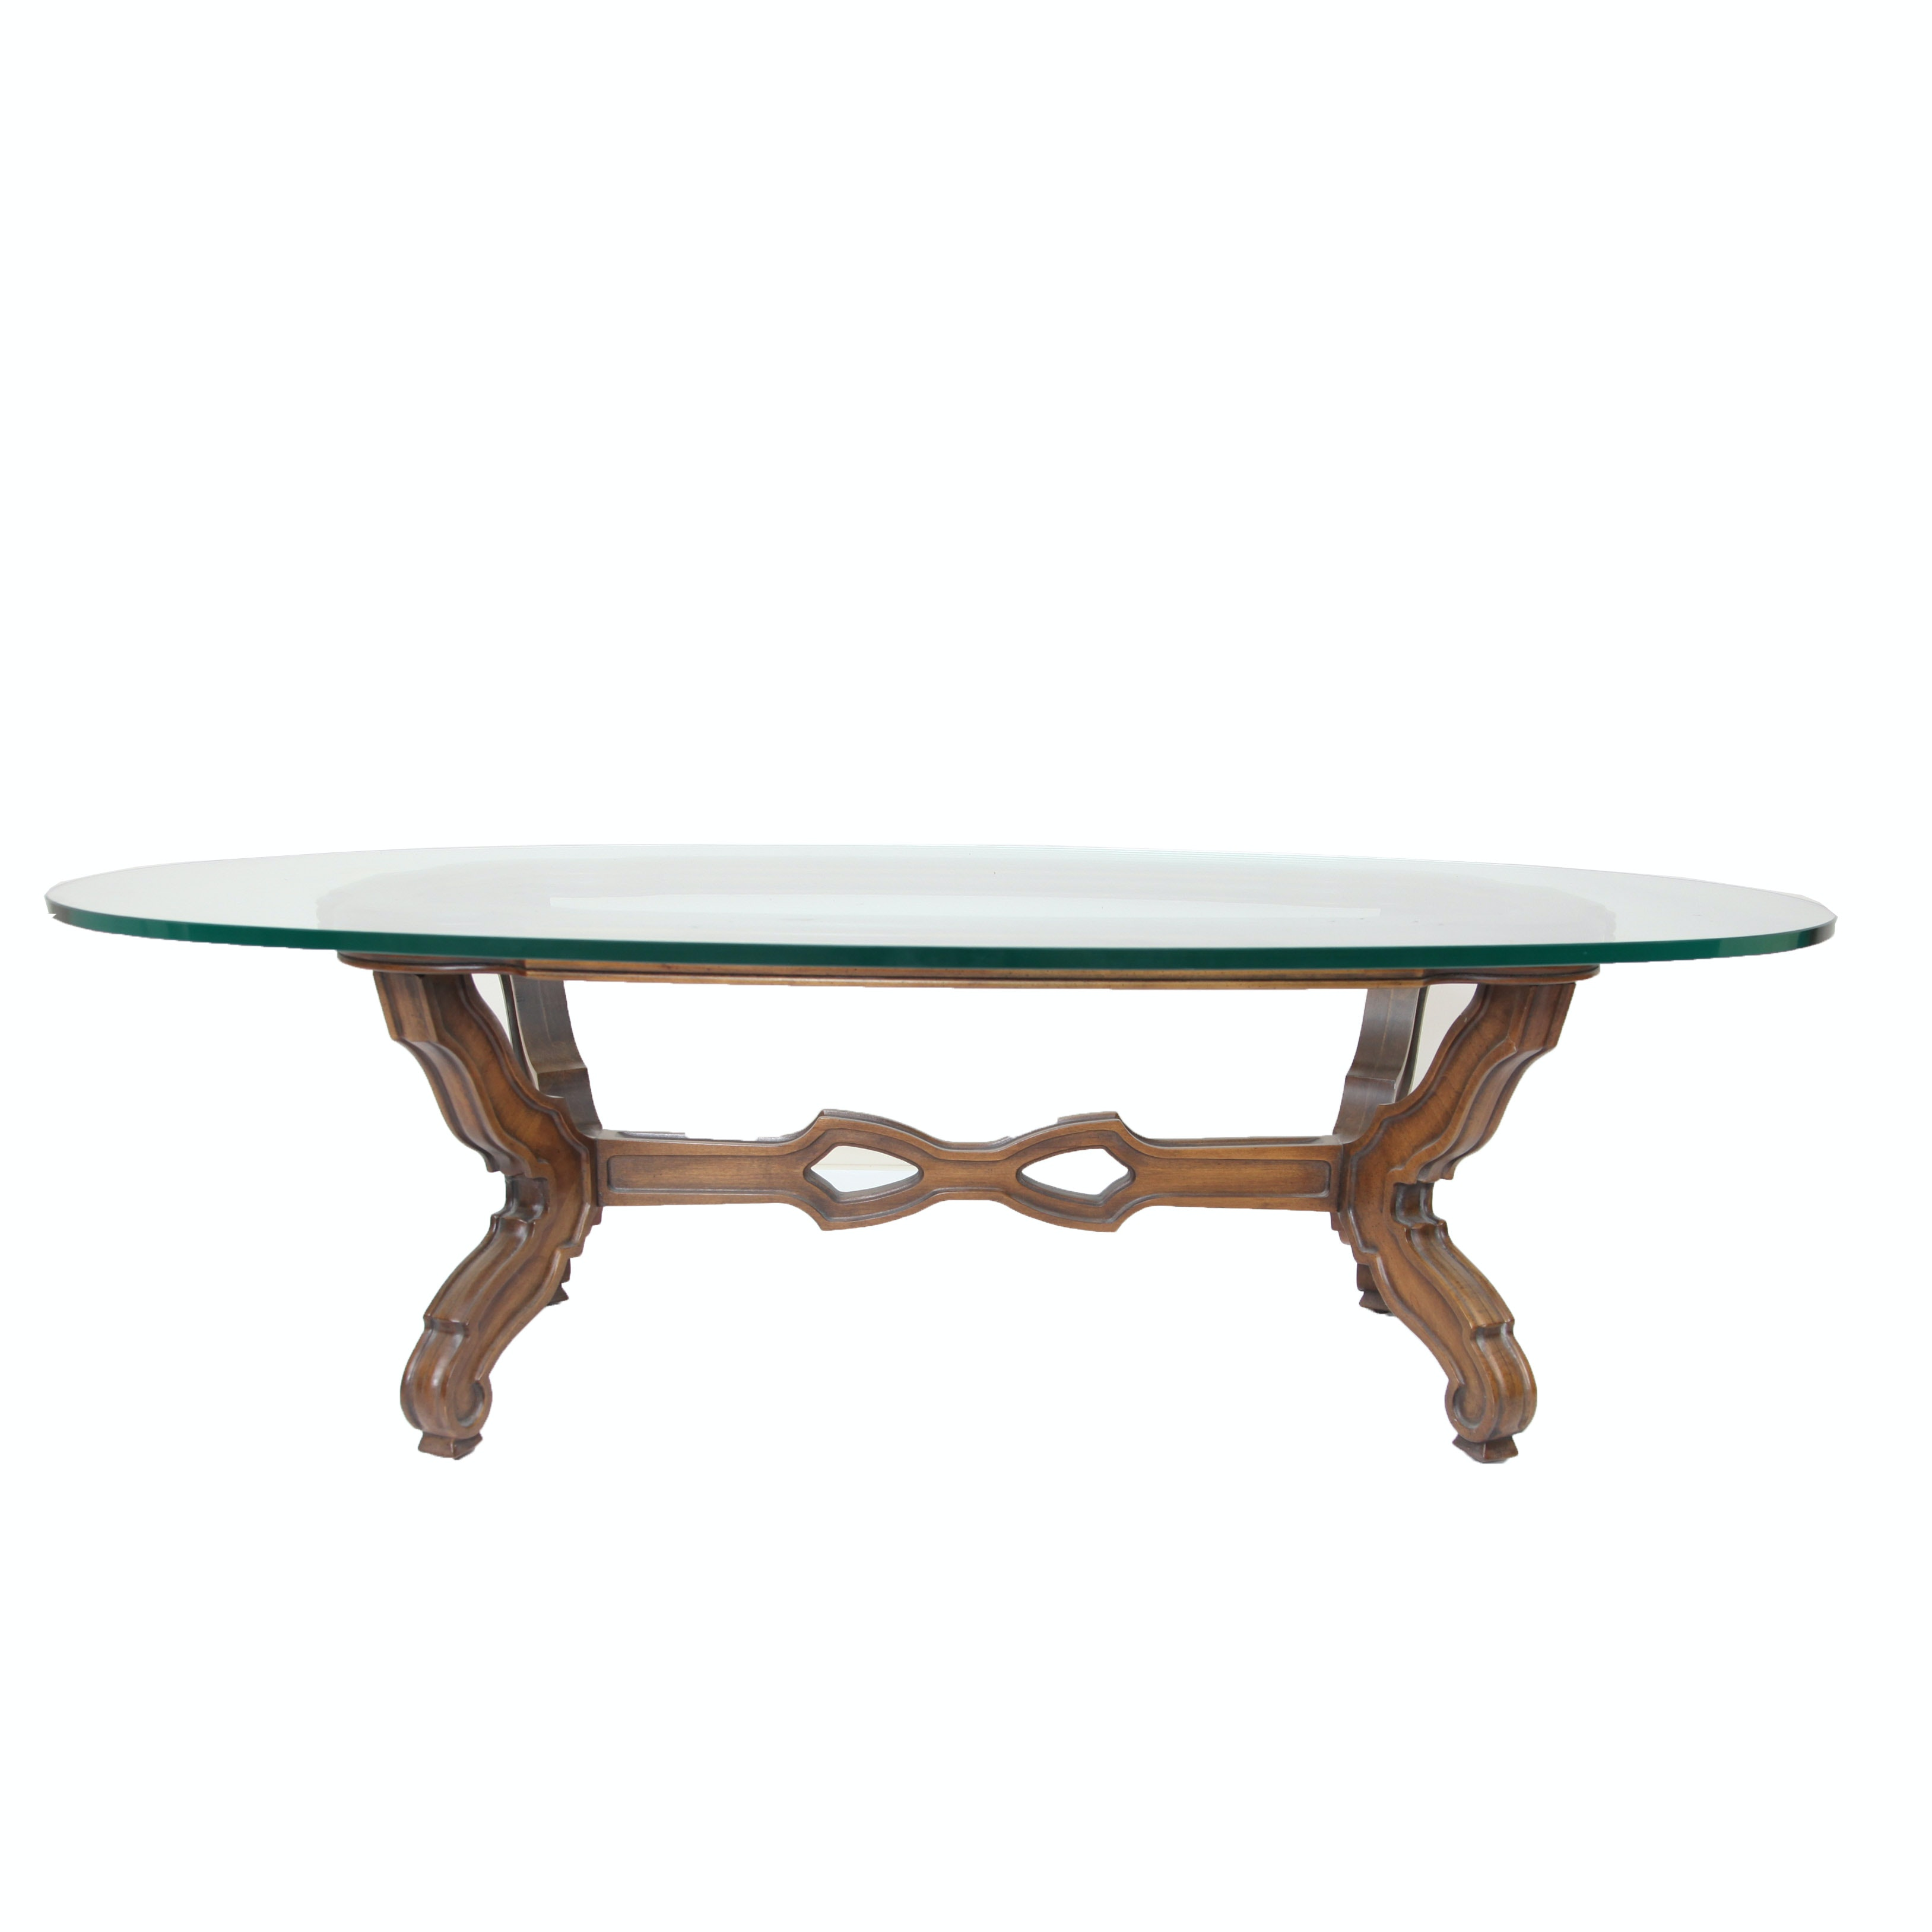 Charming Mid Century Mediterranean Style Walnut And Glass Coffee Table ...